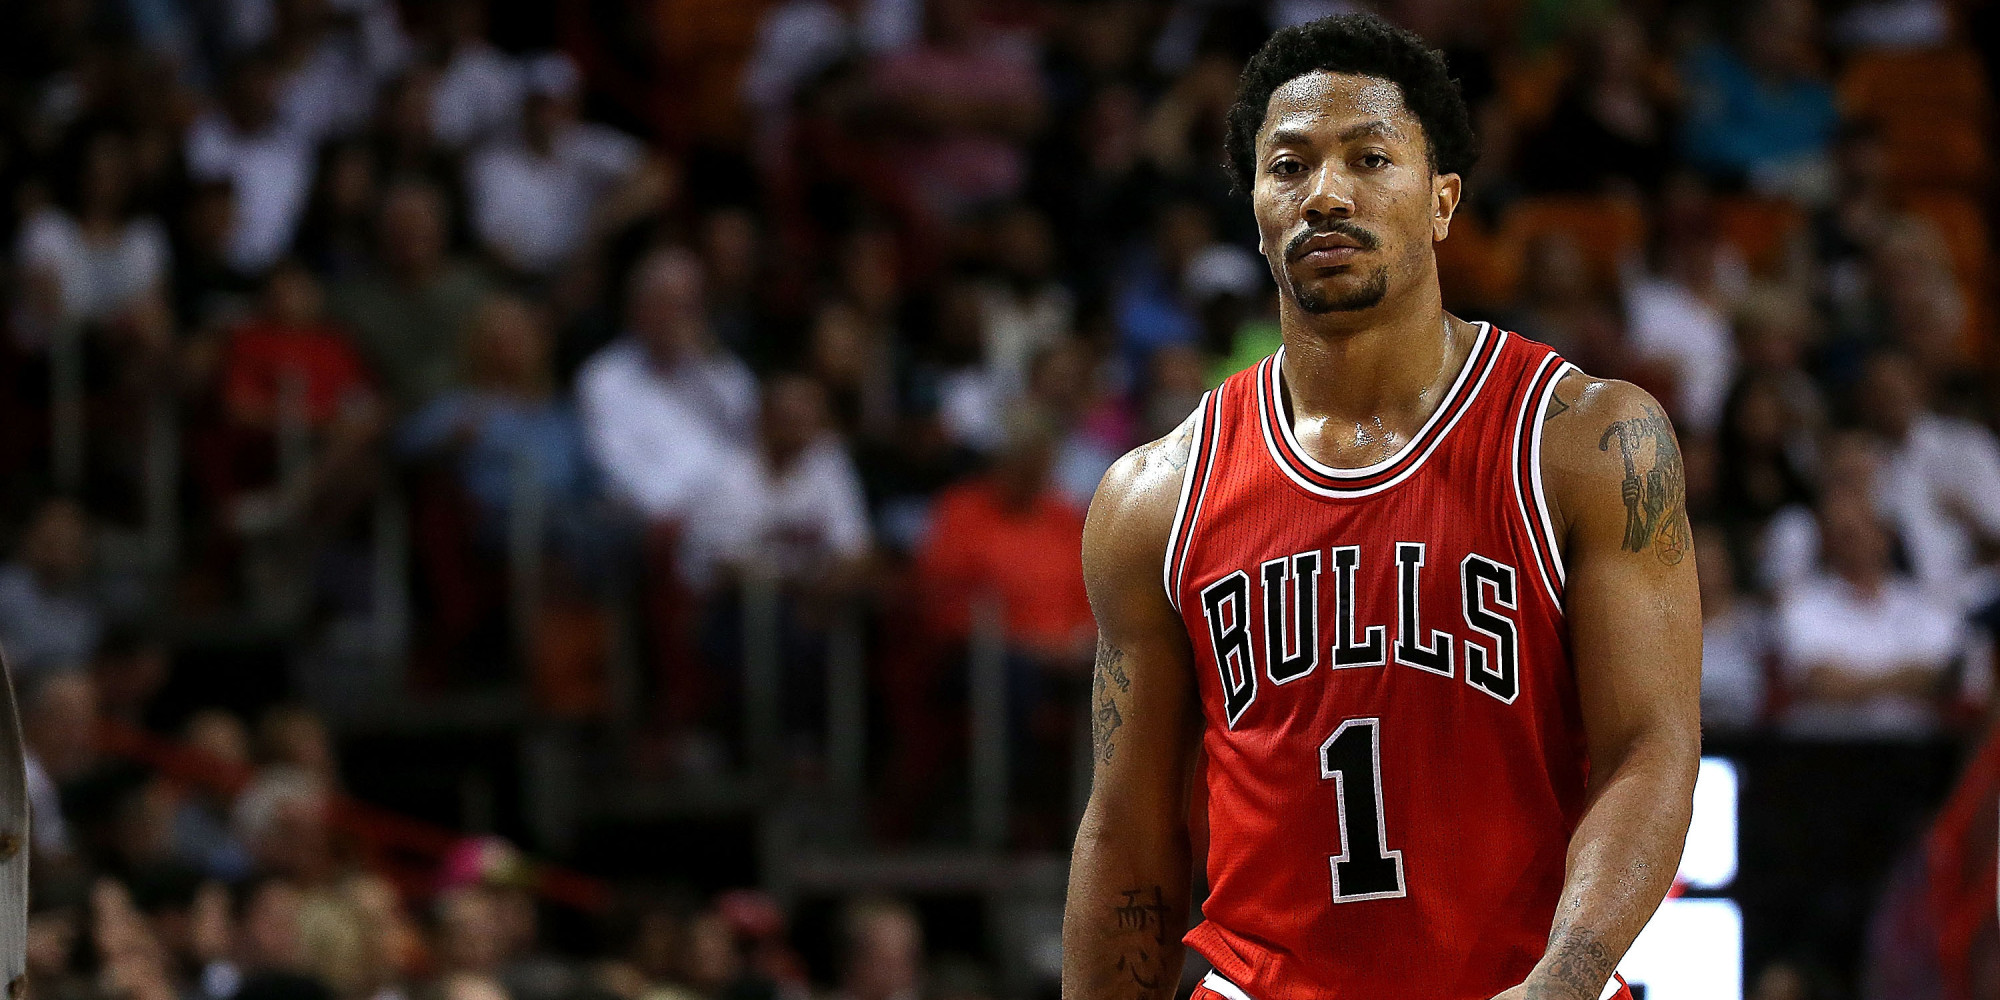 ... The Ecstasy Of Watching Derrick Rose Play Well | The Huffington Post